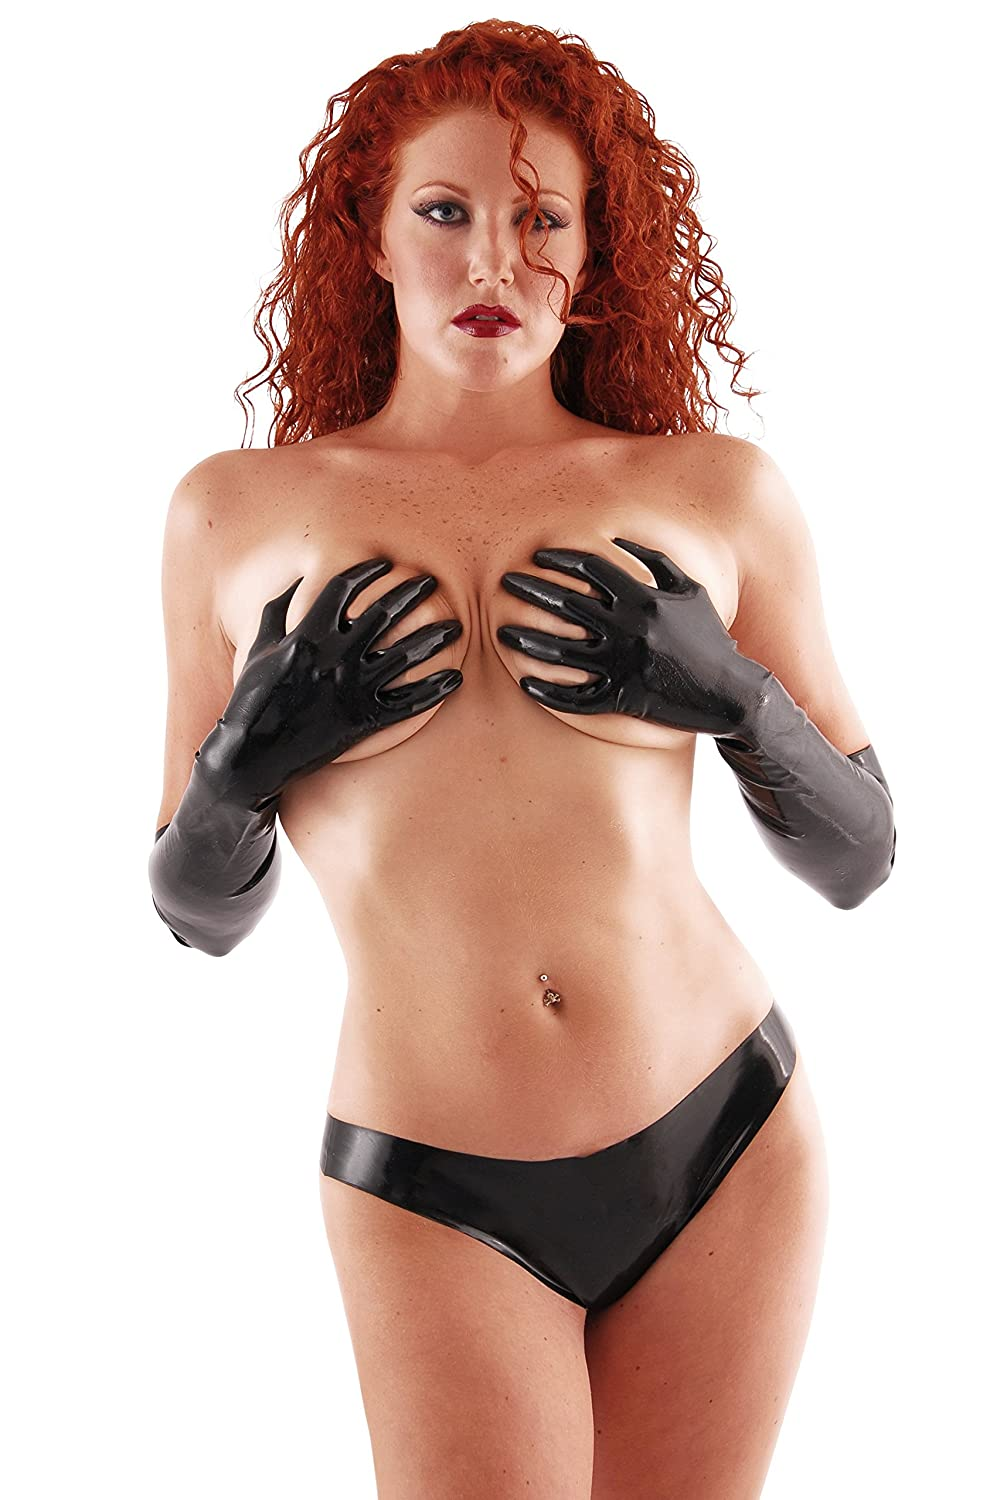 Chlorinated Latex Mid Gloves (Elbow Length) Fetish - Black